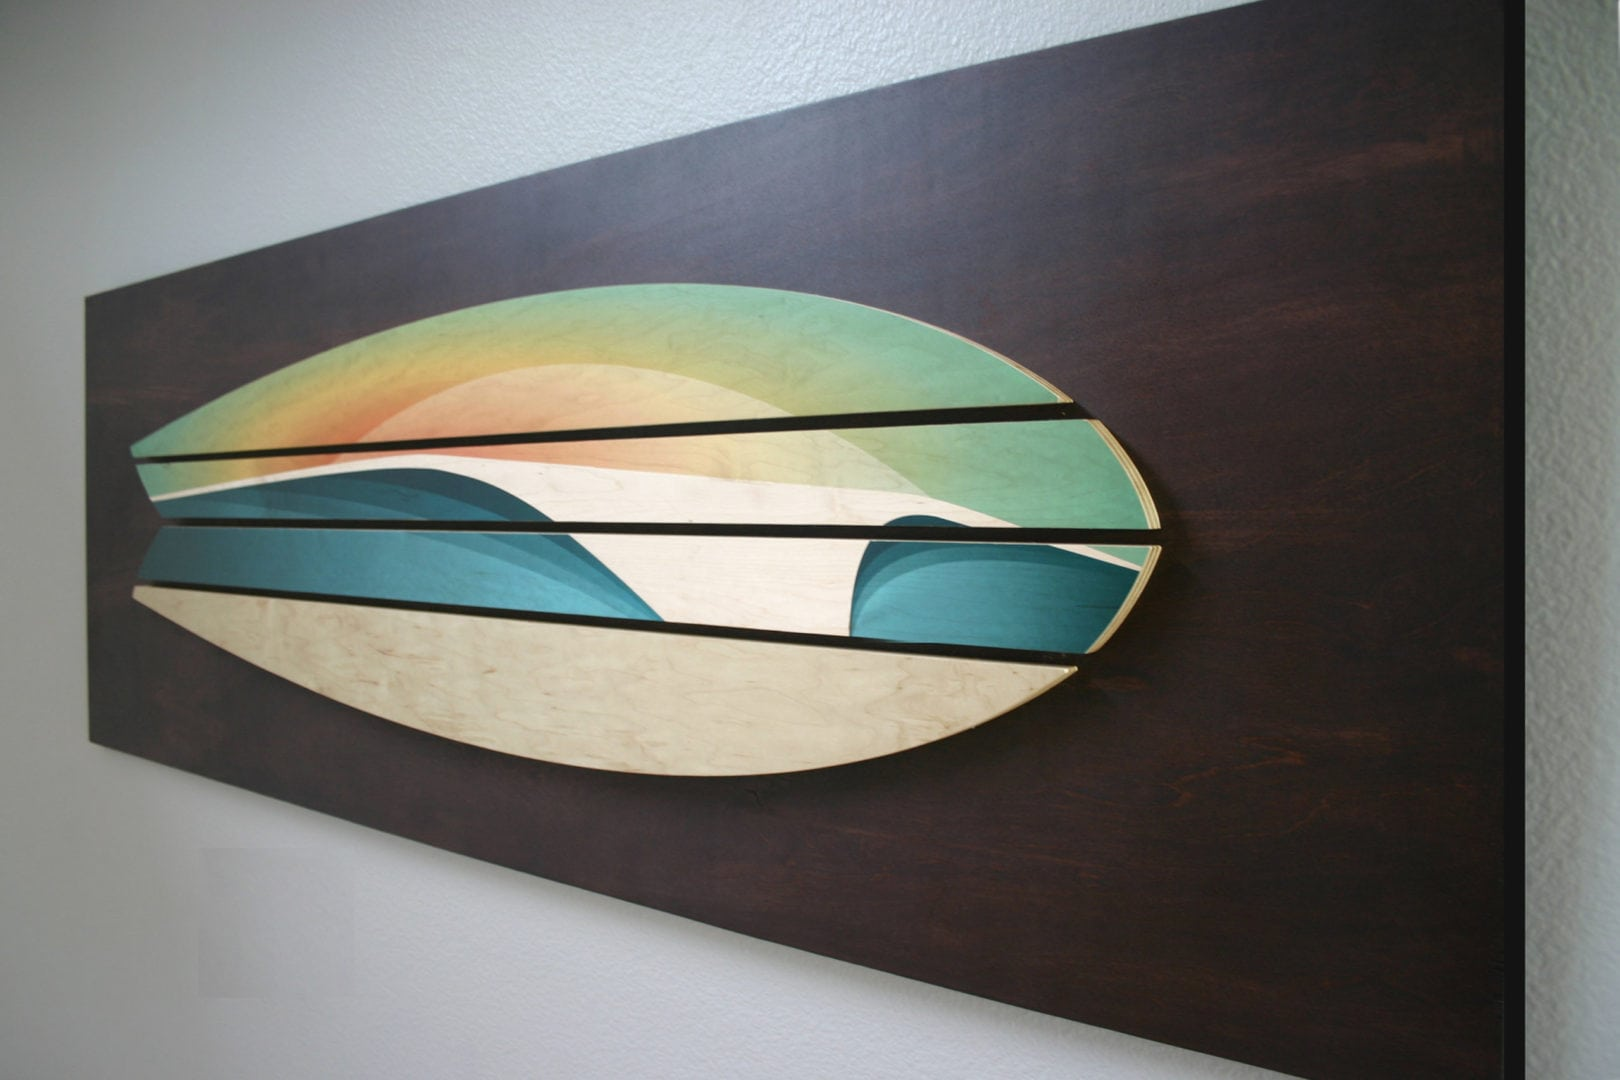 wooden surf board decor | beach artwork decor | Surfboard wall art